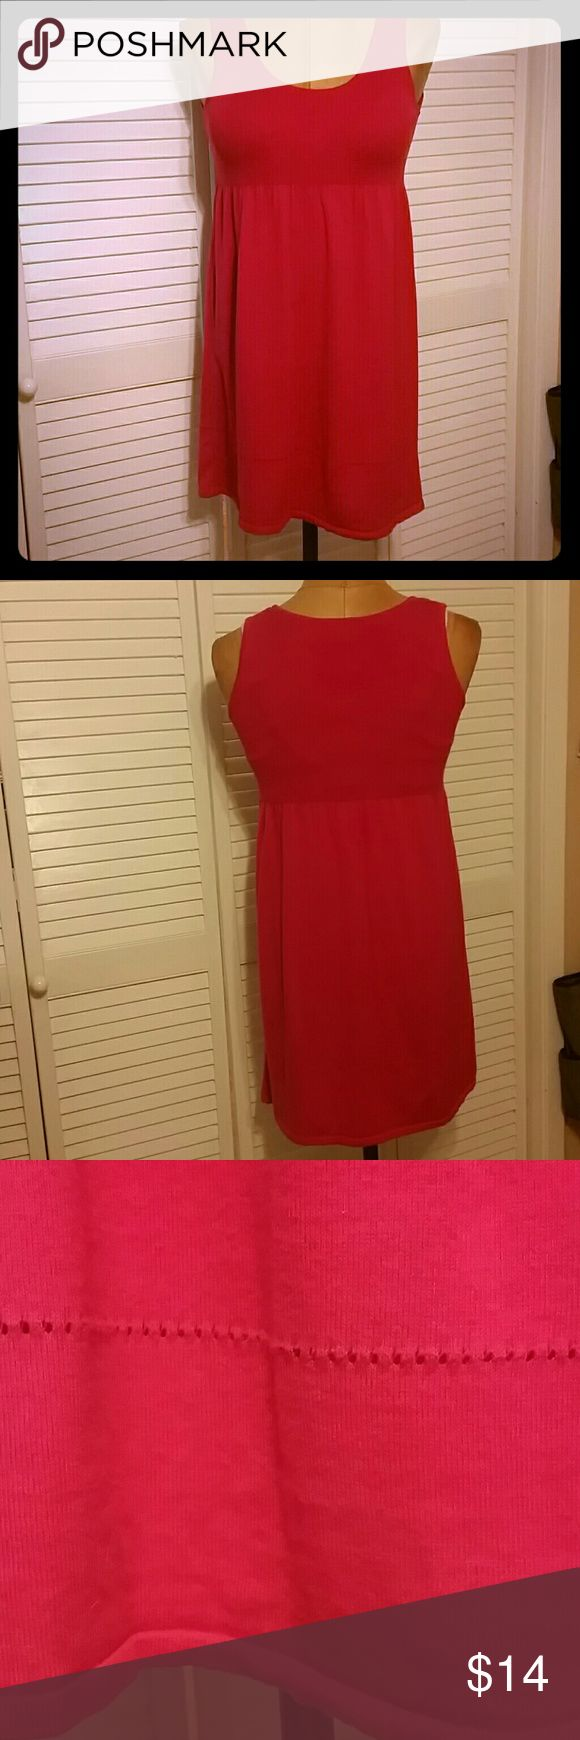 Dress Hot Pink sweater dress, light weight. Machine wash. Empire waist, decorative detail closed to hem line! Comfy dress, casual or dress up, great for travel. 3 H&M Dresses